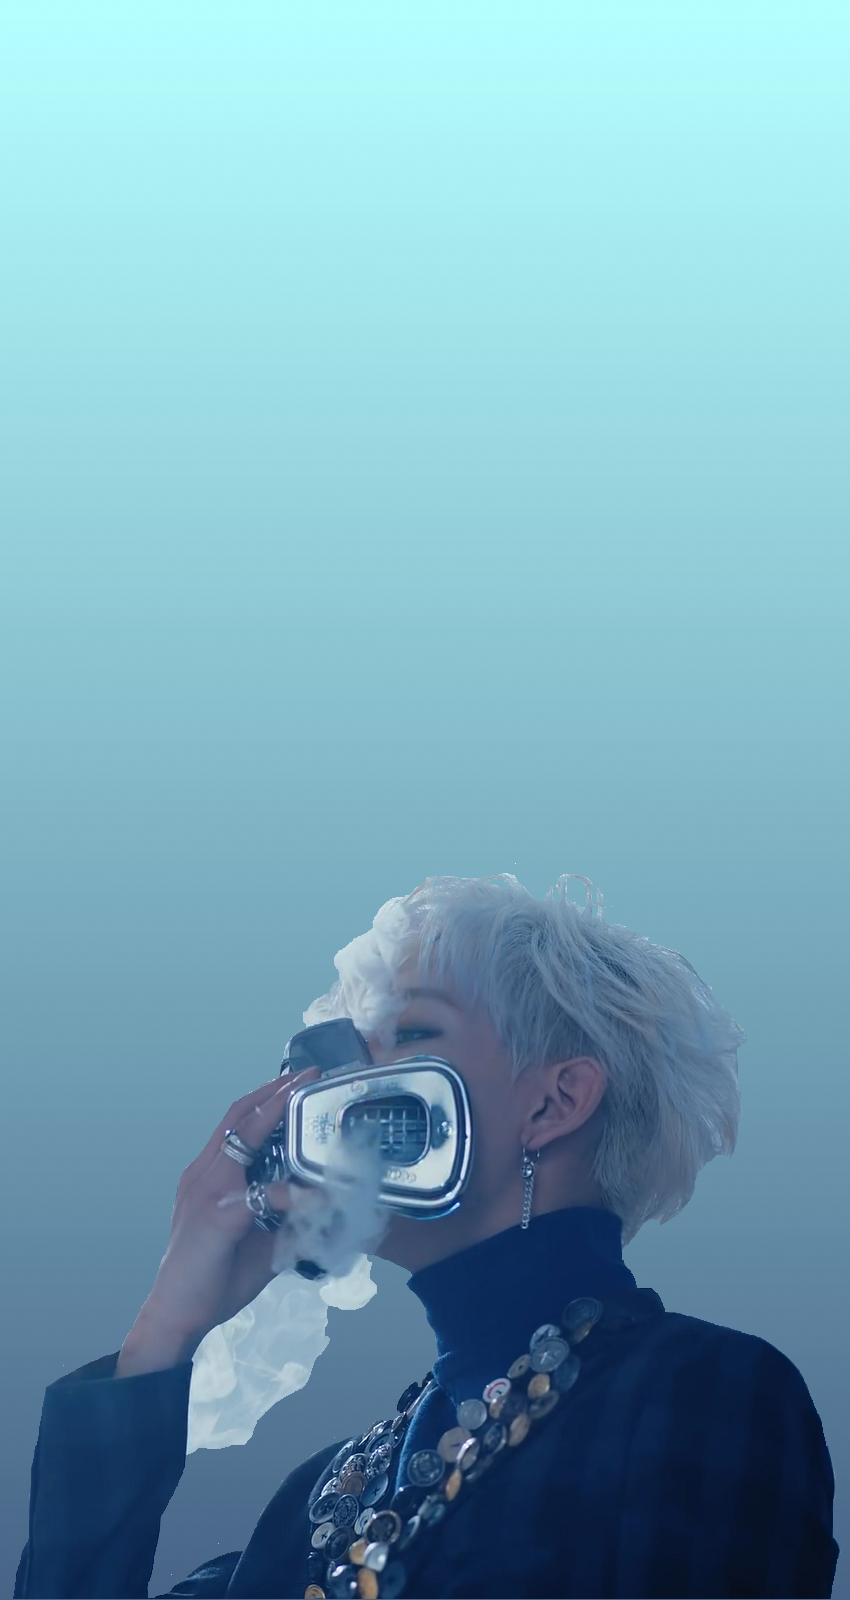 Wallpaper iphone got7 - Find This Pin And More On Got7 By Finnis_namemy